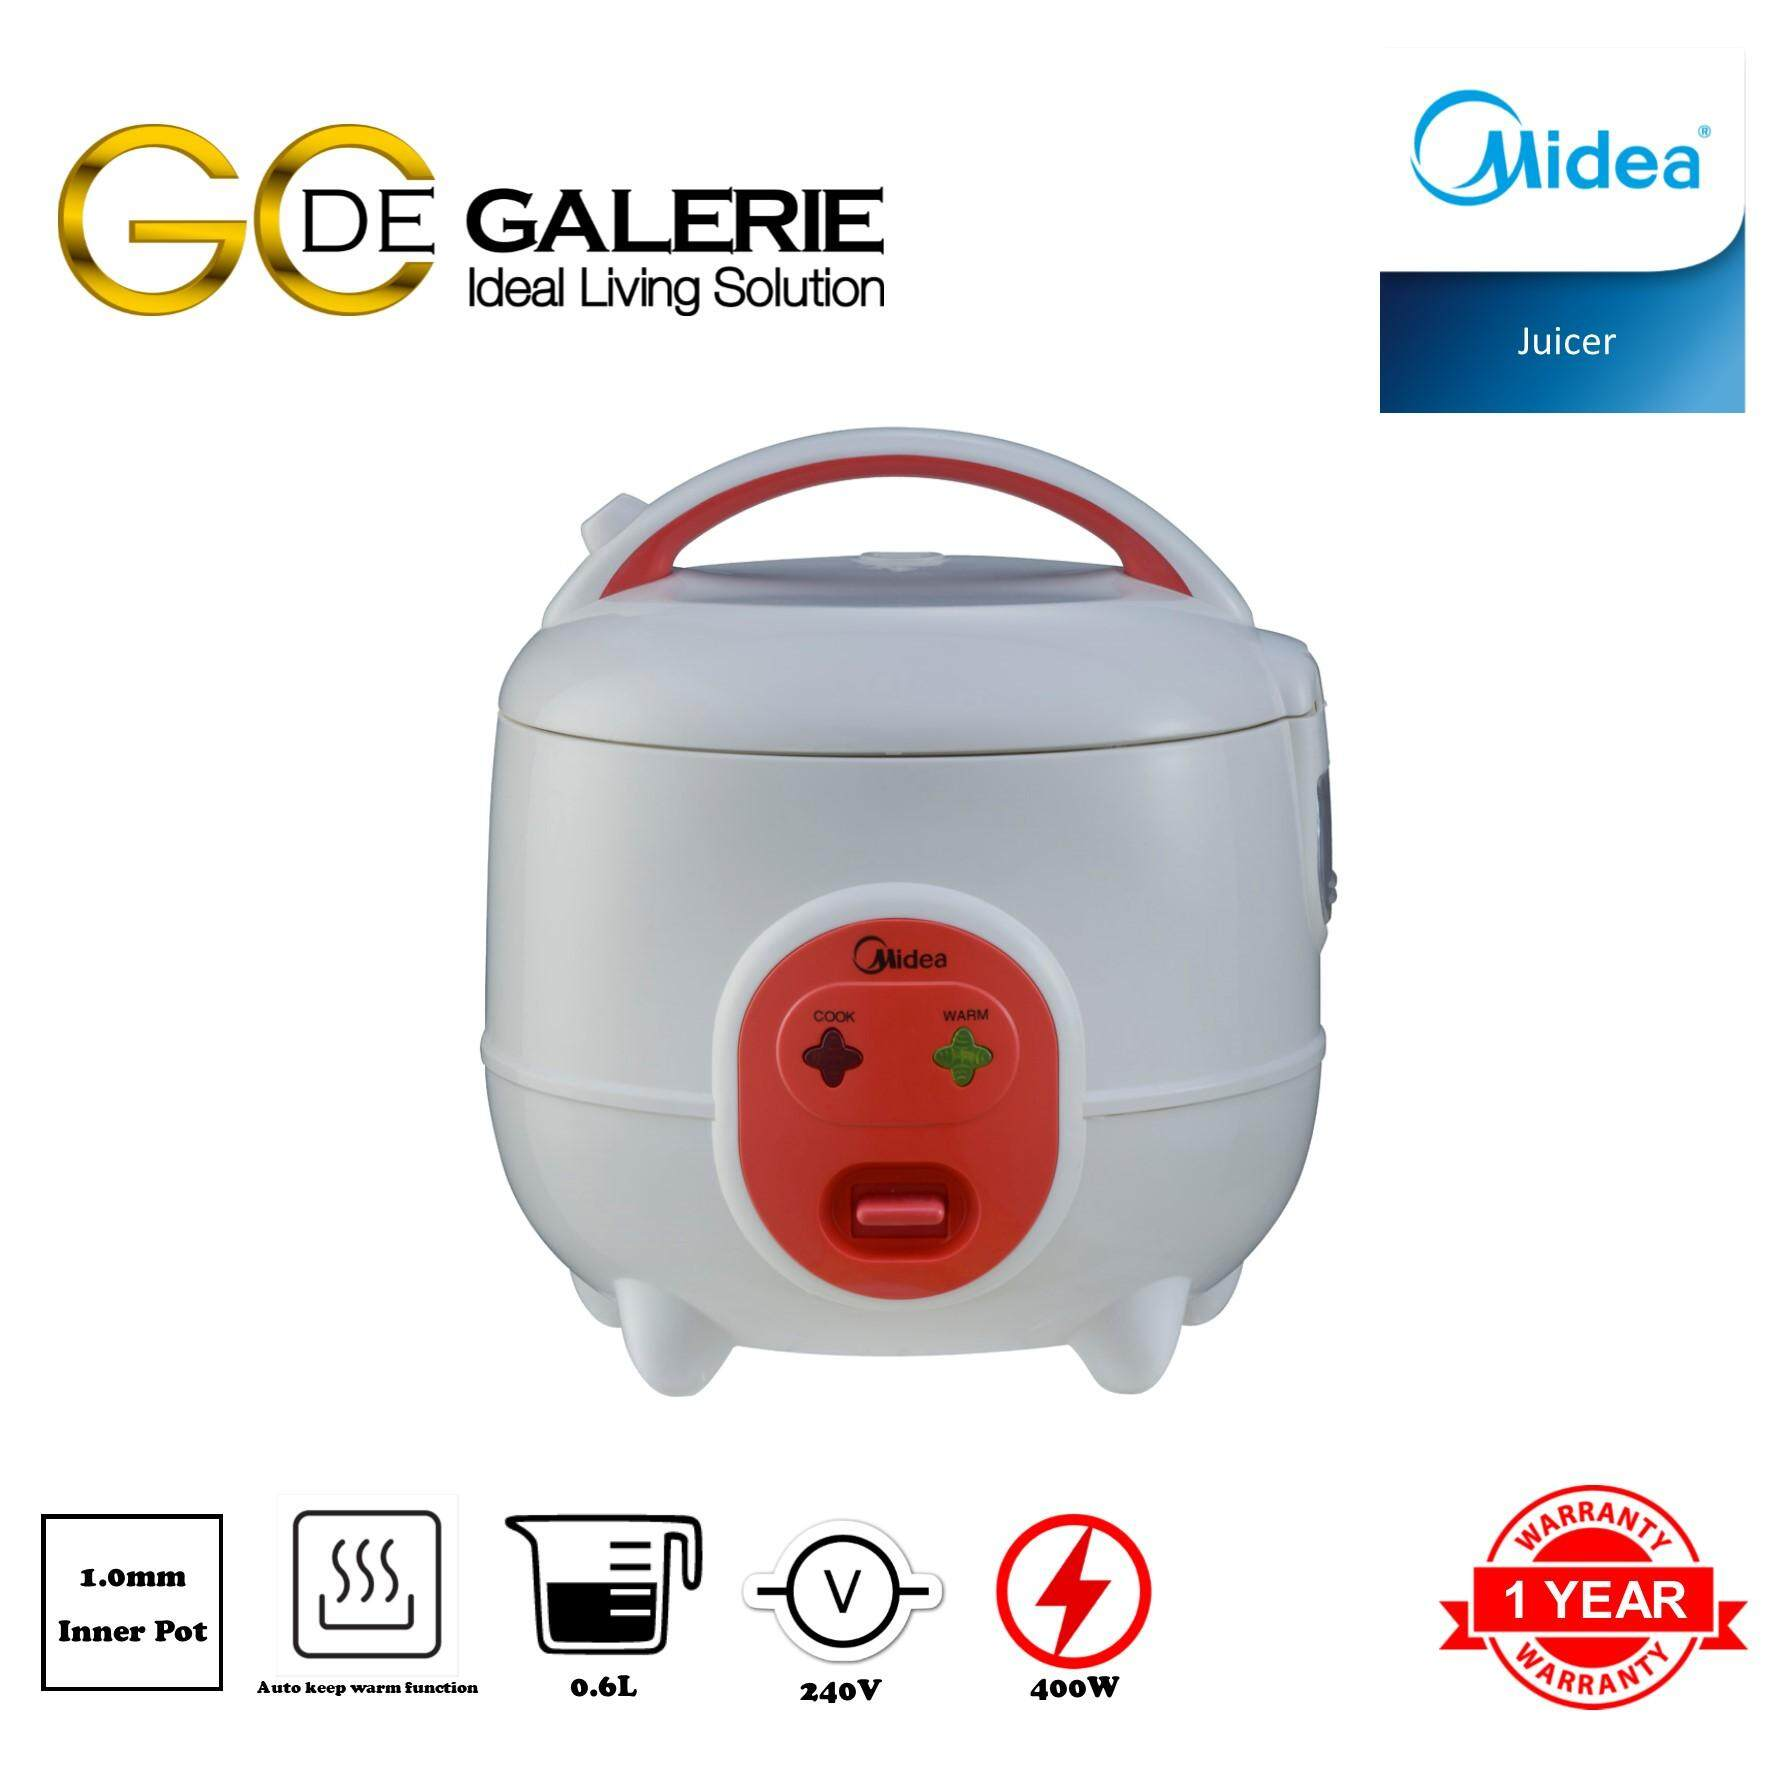 MINI JAR RICE COOKER MIDEA MR-CM06SC 0.6L RED